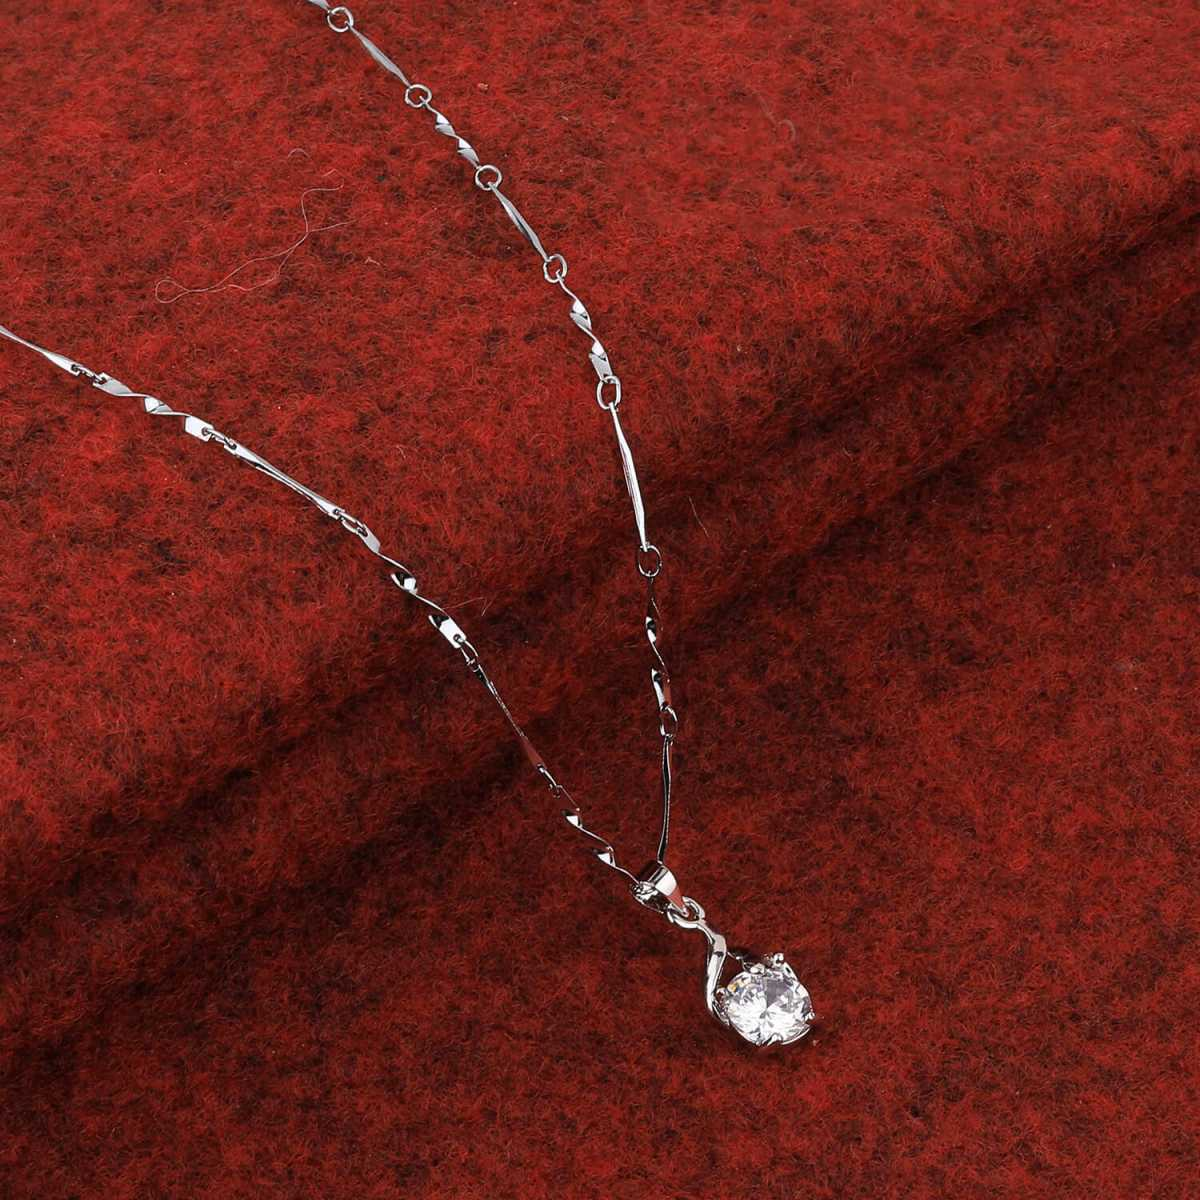 SILVER SHINE  Silver Plated Party Wear Chain With Charm Solitaire Diamond Pendant For Women